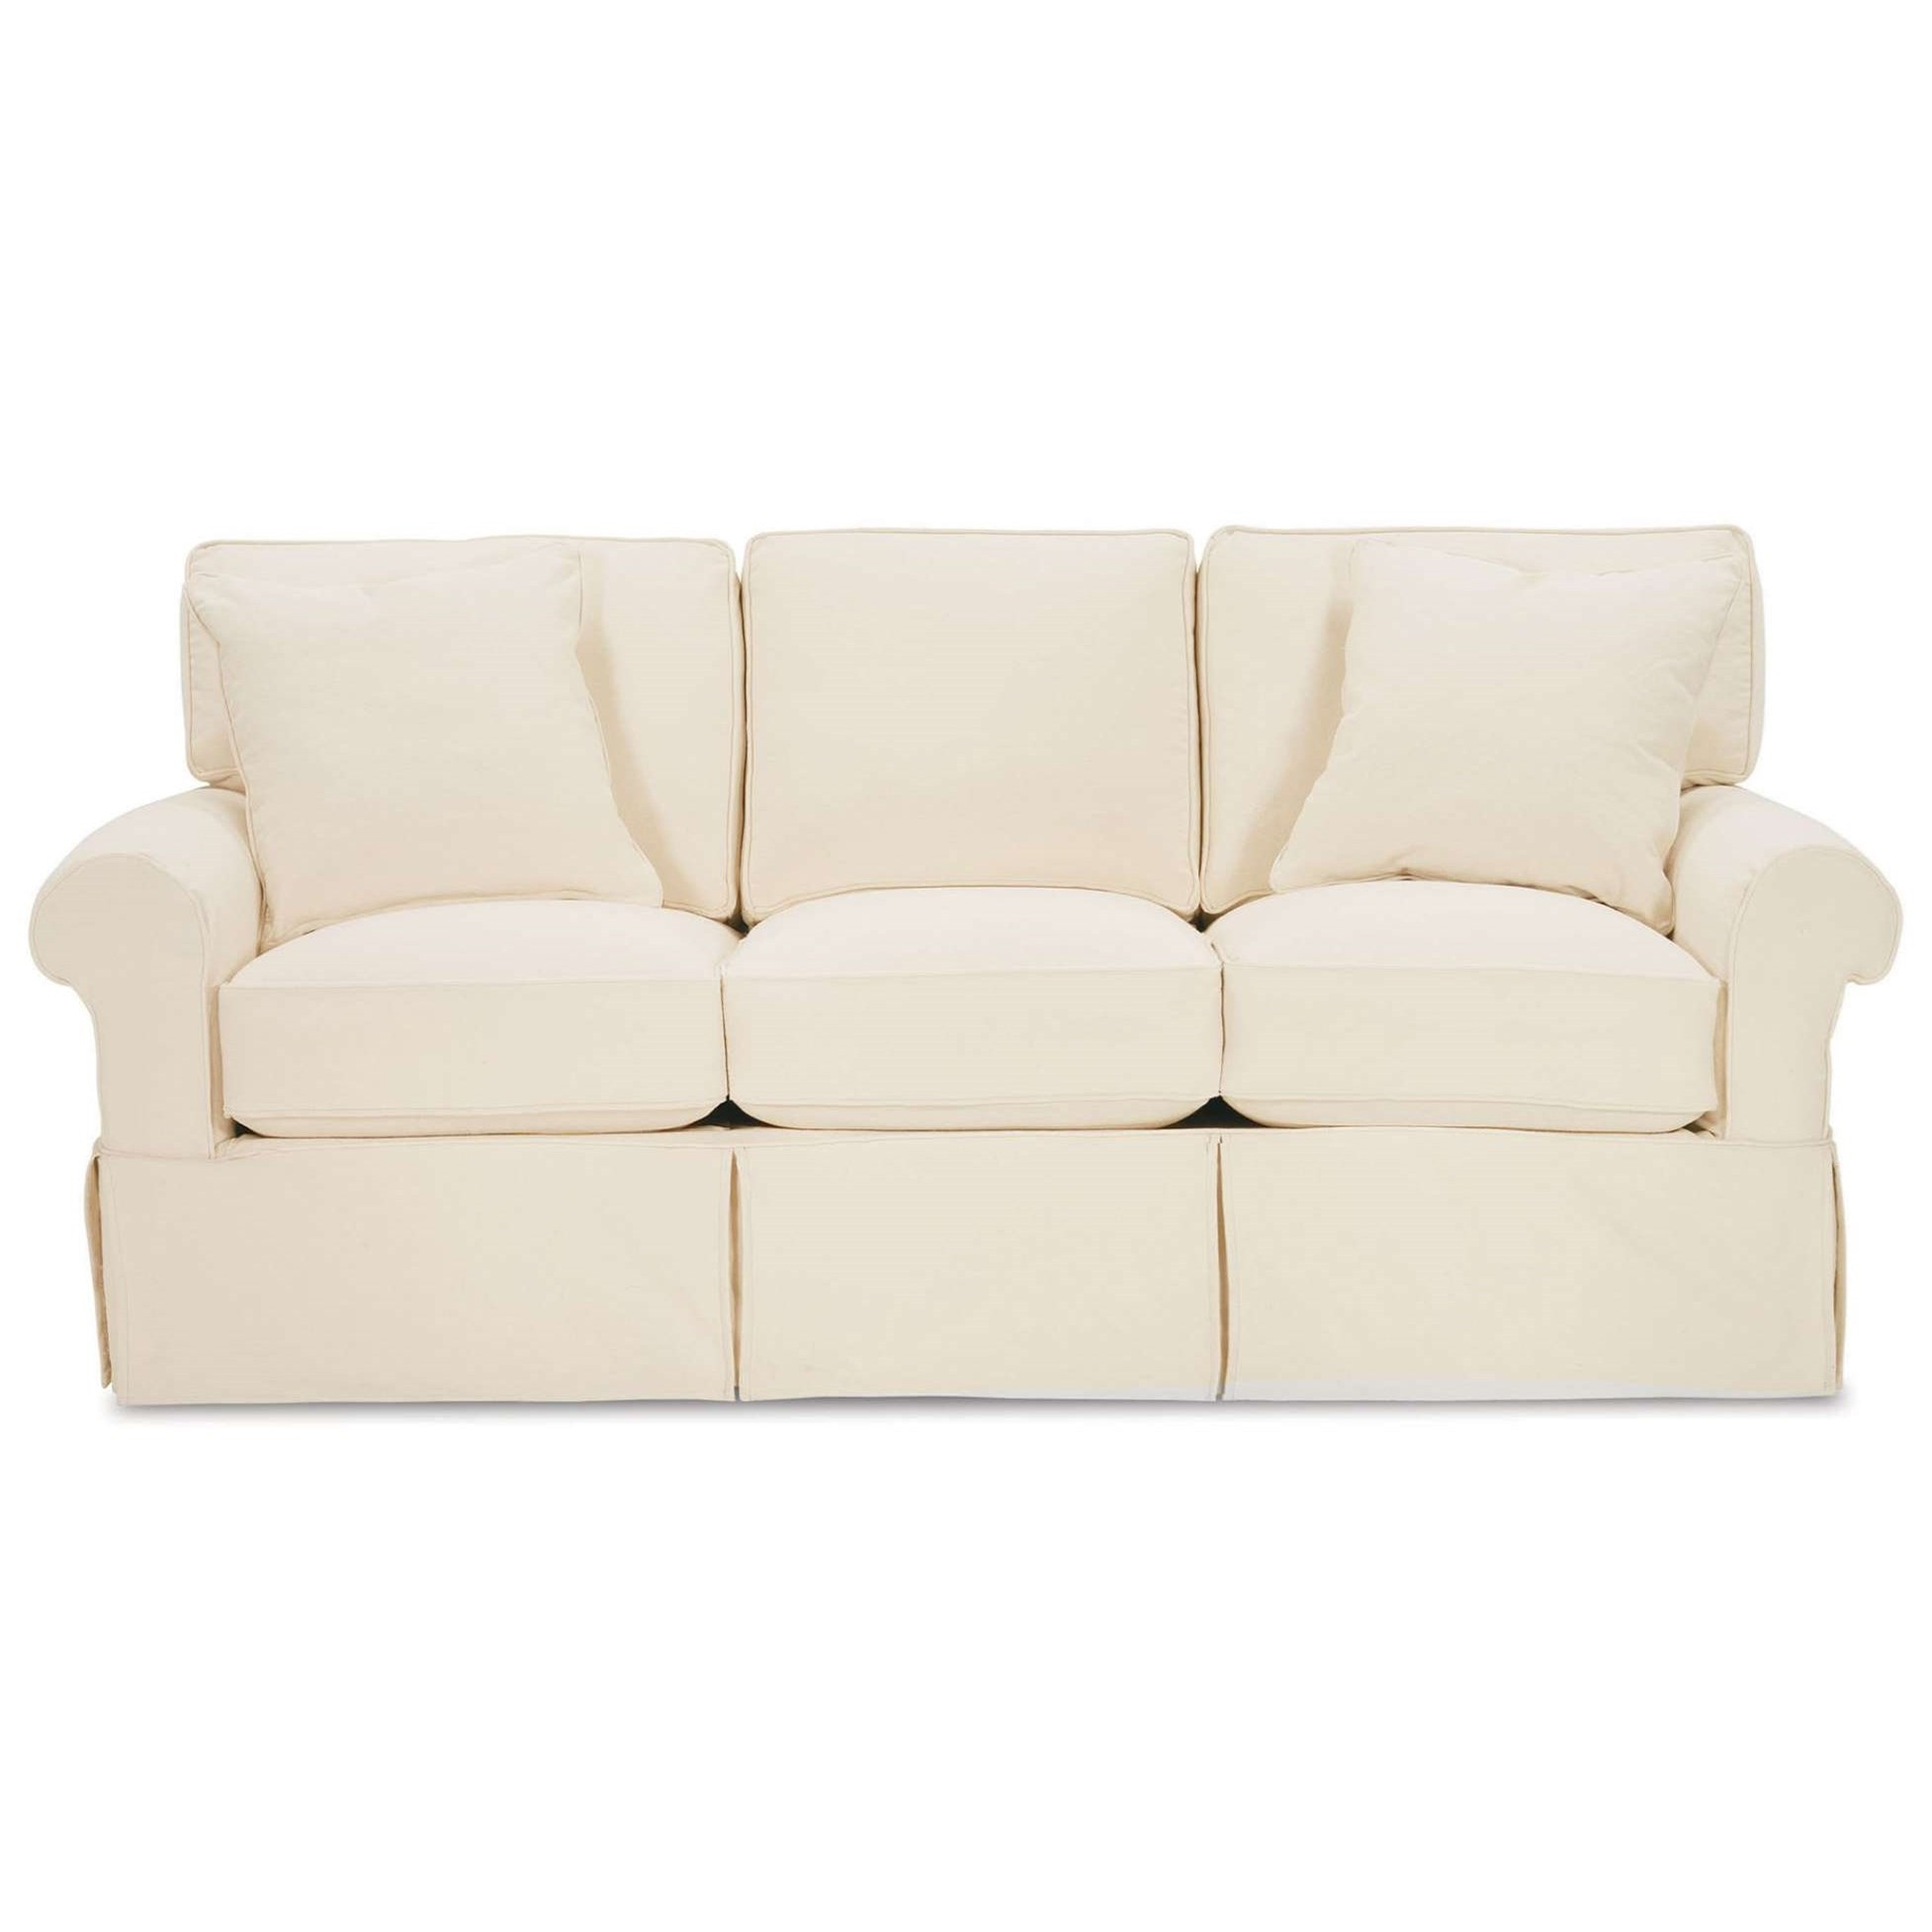 Nantucket  Casual Sofa with Rolled Arms by Rowe at Saugerties Furniture Mart